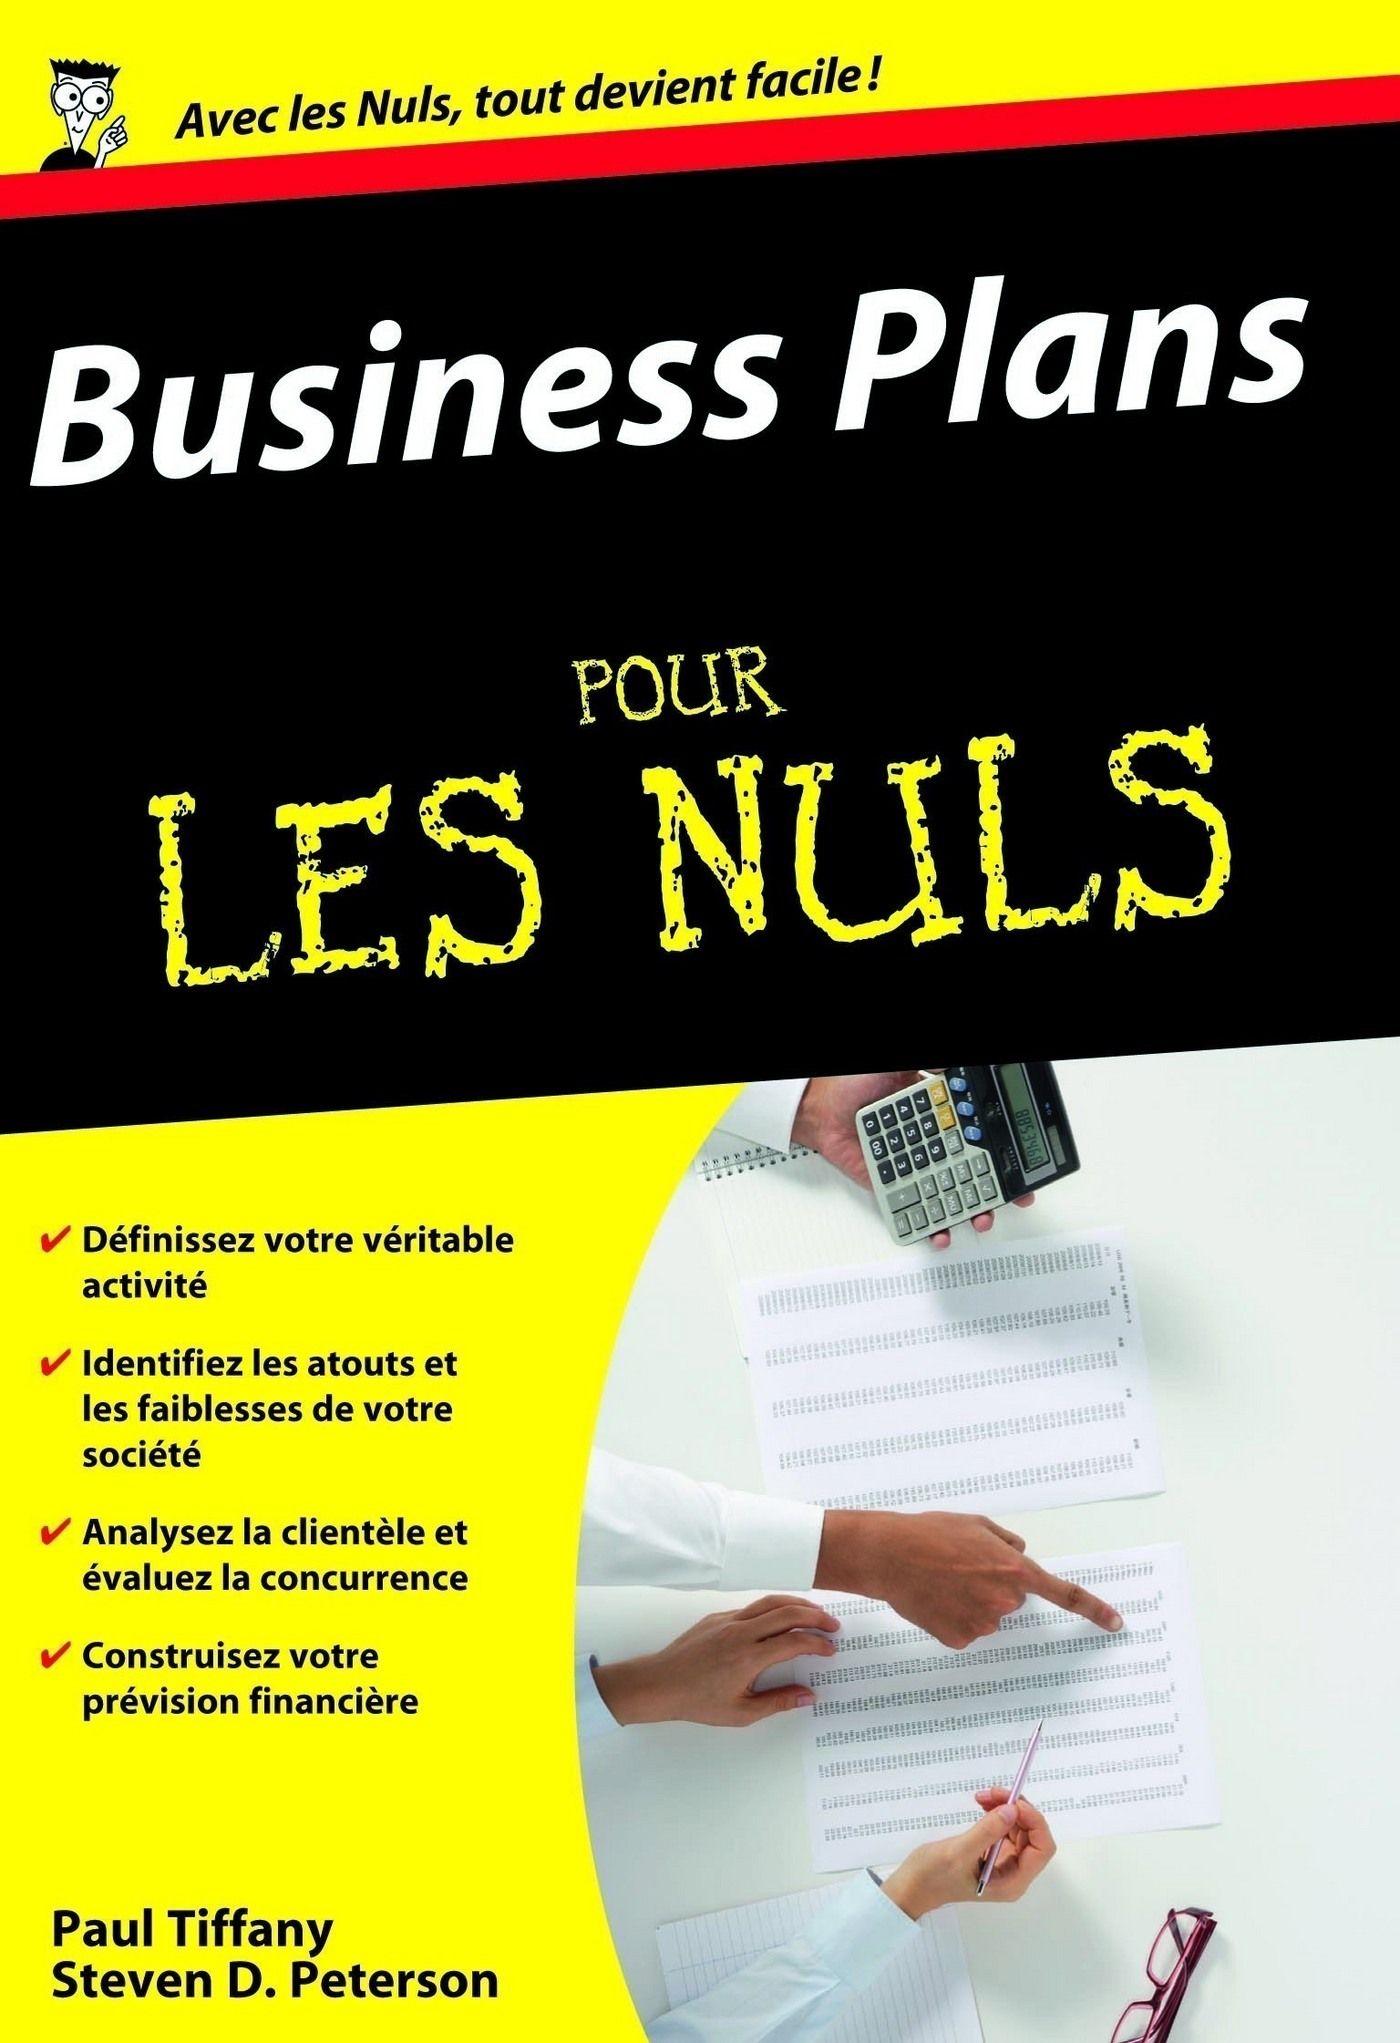 les business plans pour les nuls - paul tiffany